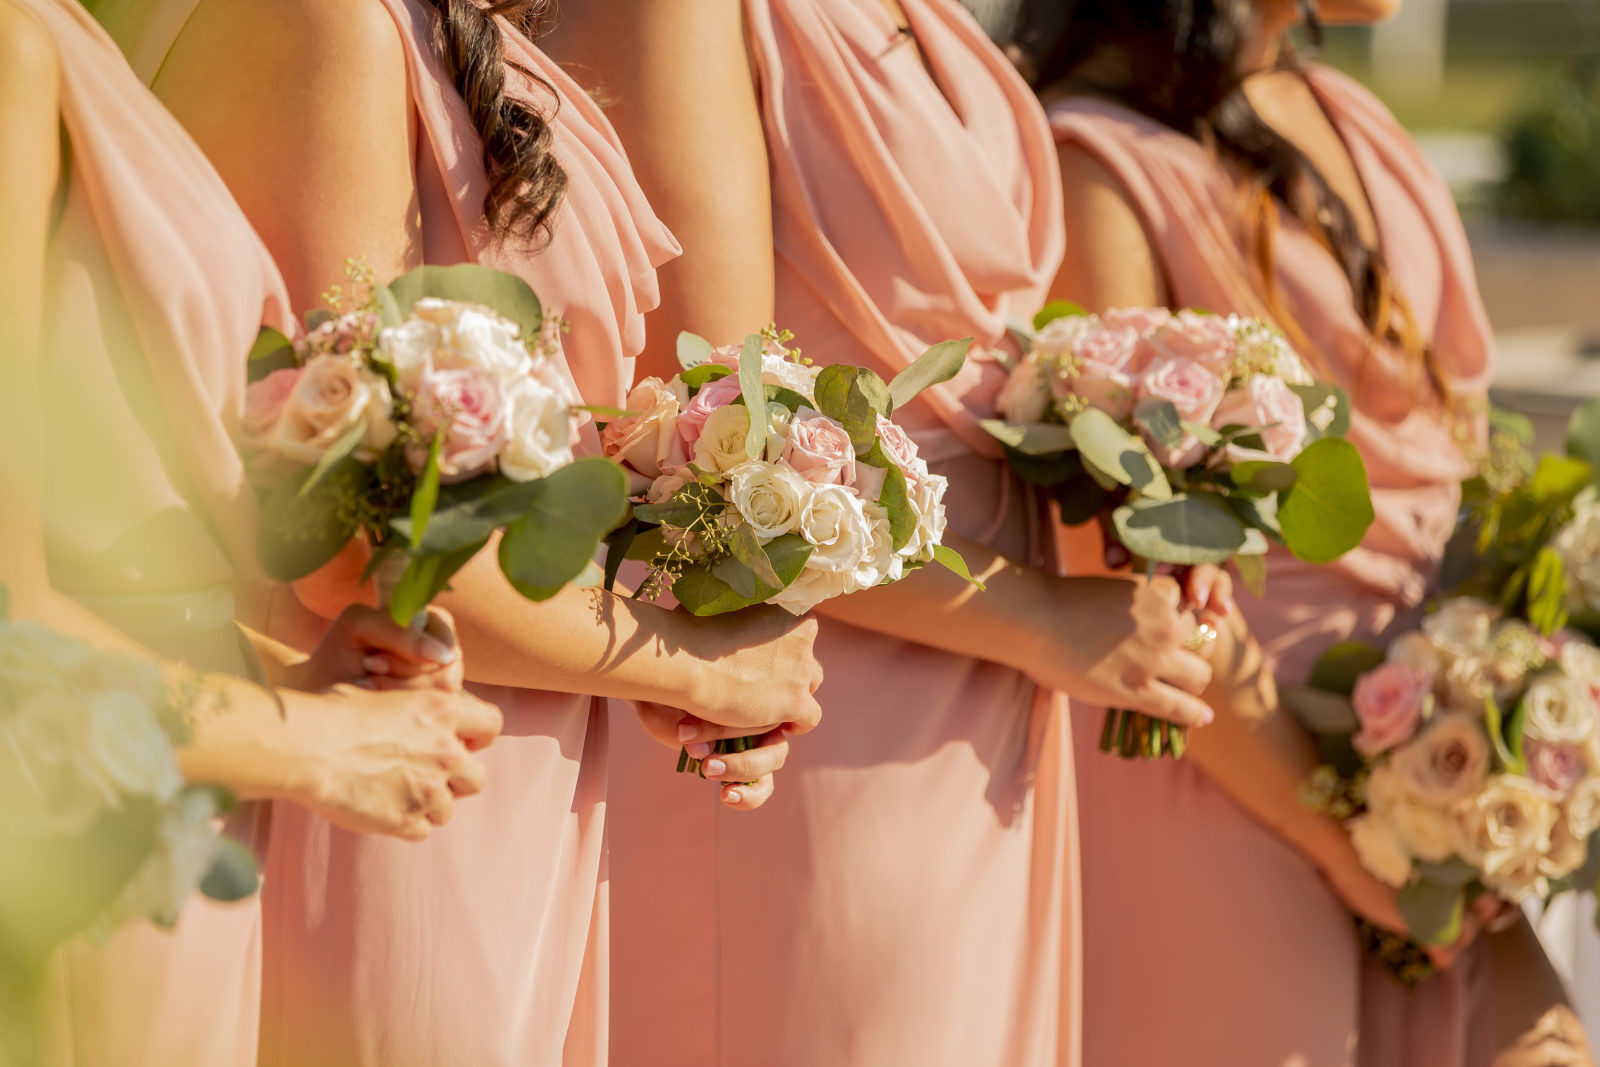 Peach, Ivory and Pink Bridesmaids Bouquet Flowers with Peach Dresses | Tampa Bay Wedding Florist Brides n' Blooms Wholesale Designs